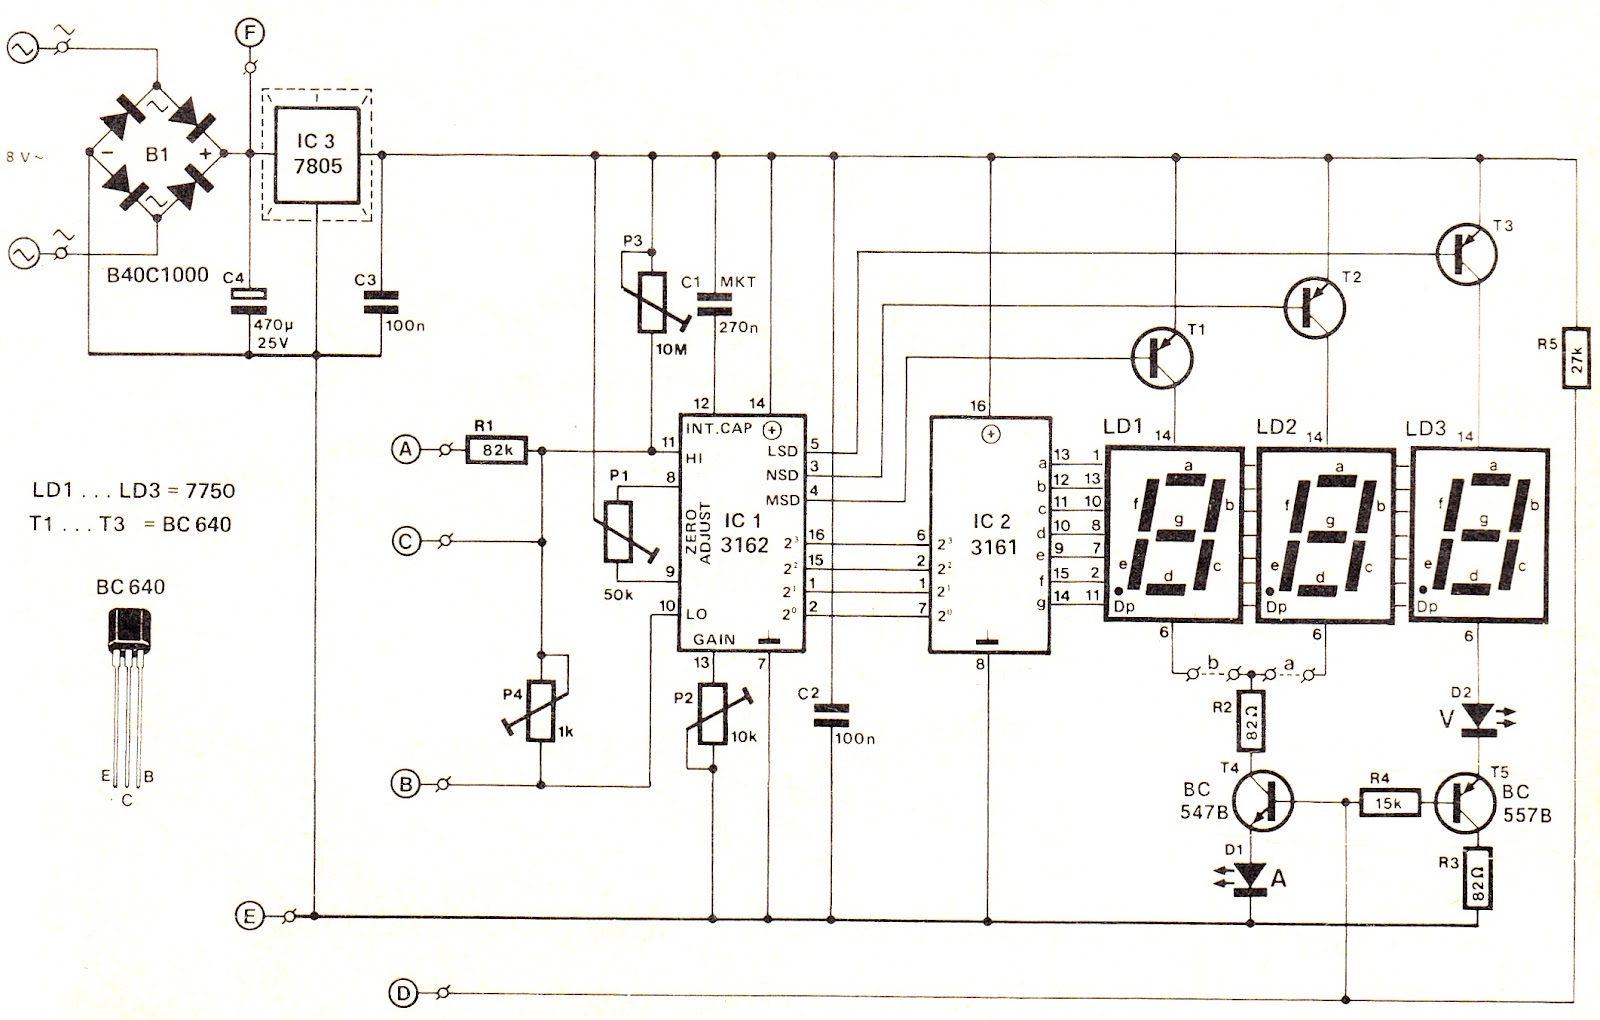 simple digital voltmeter circuit diagram using ca3162 and ca3161